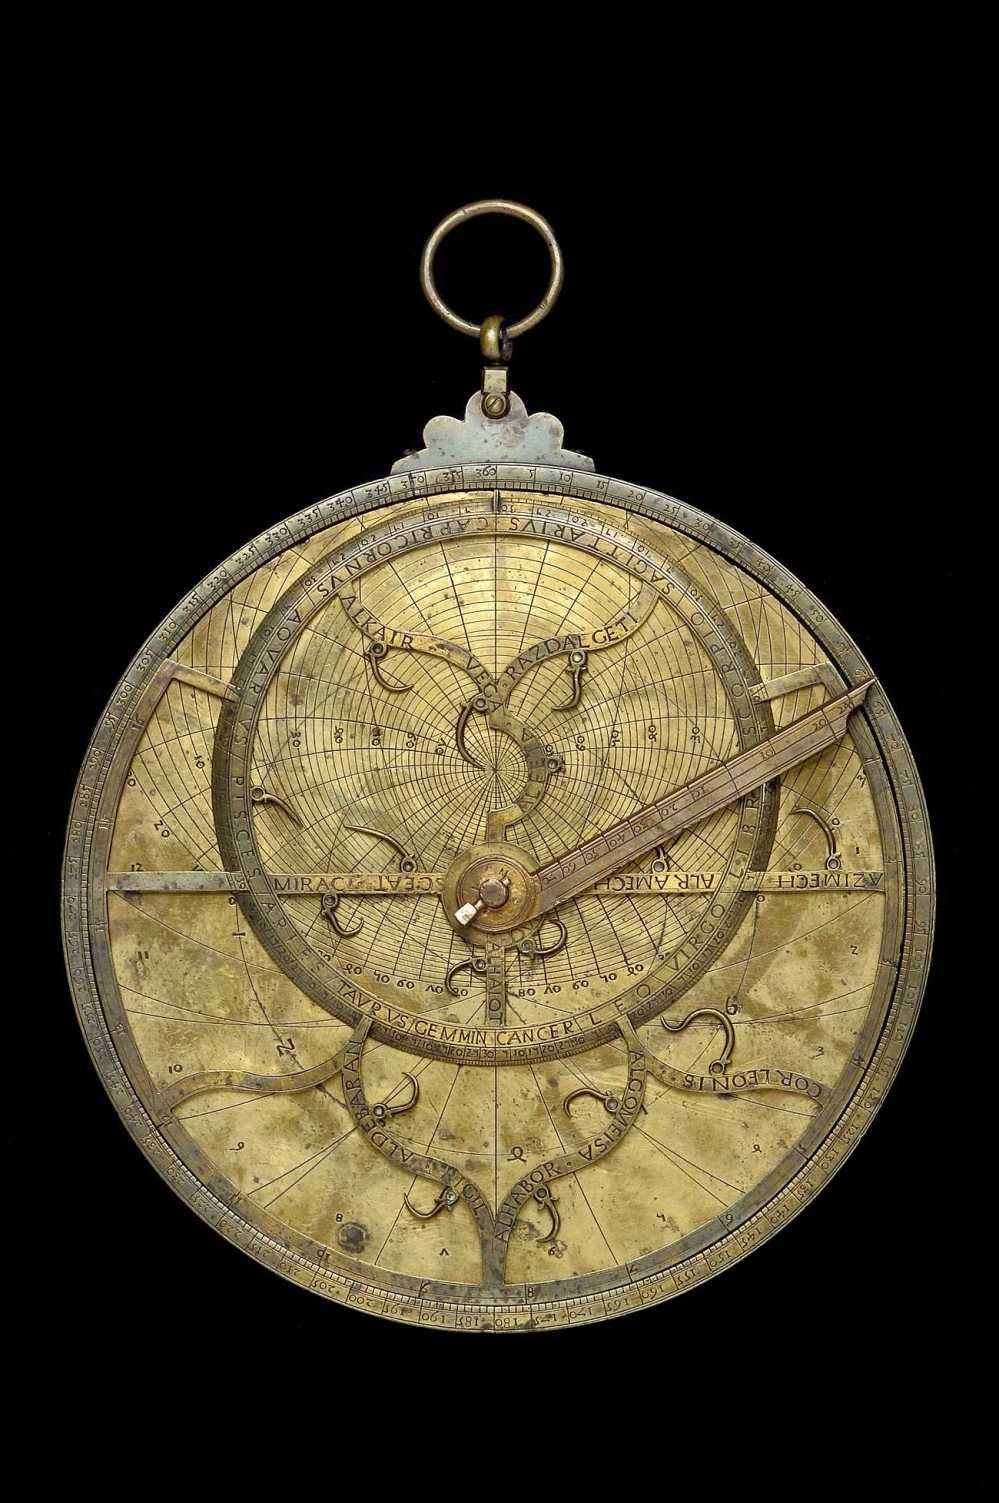 preview image for Astrolabe, Italian?, c. 1500?